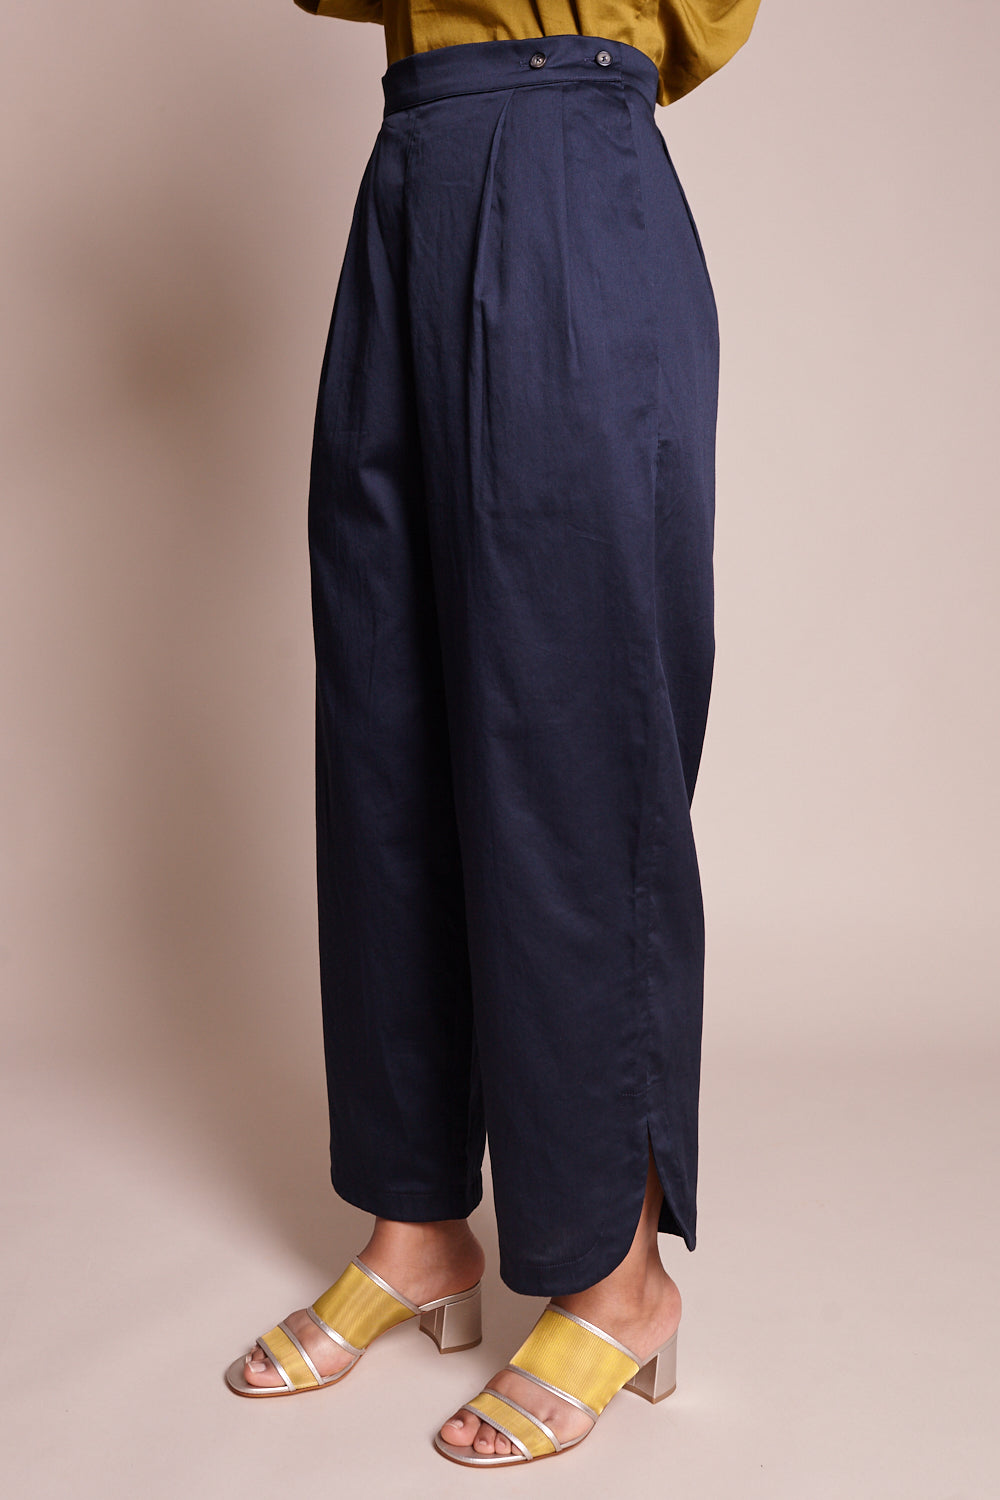 Easy Pants in Dark Navy